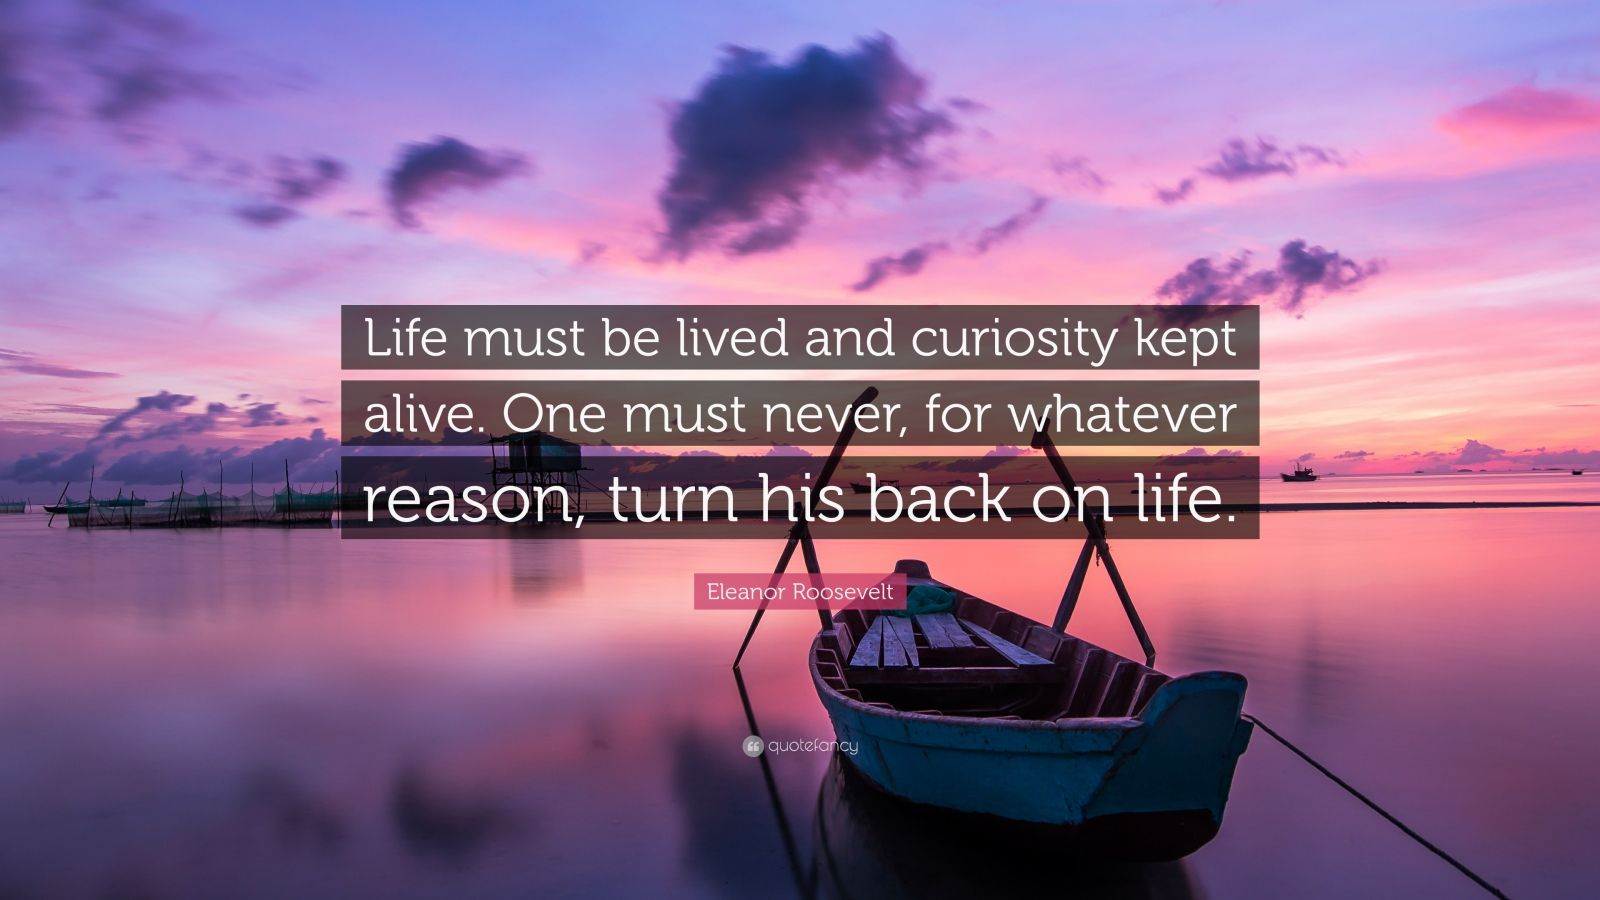 """Eleanor Roosevelt Quote: """"Life must be lived and curiosity kept alive. One must never, for whatever reason, turn his back on life."""""""